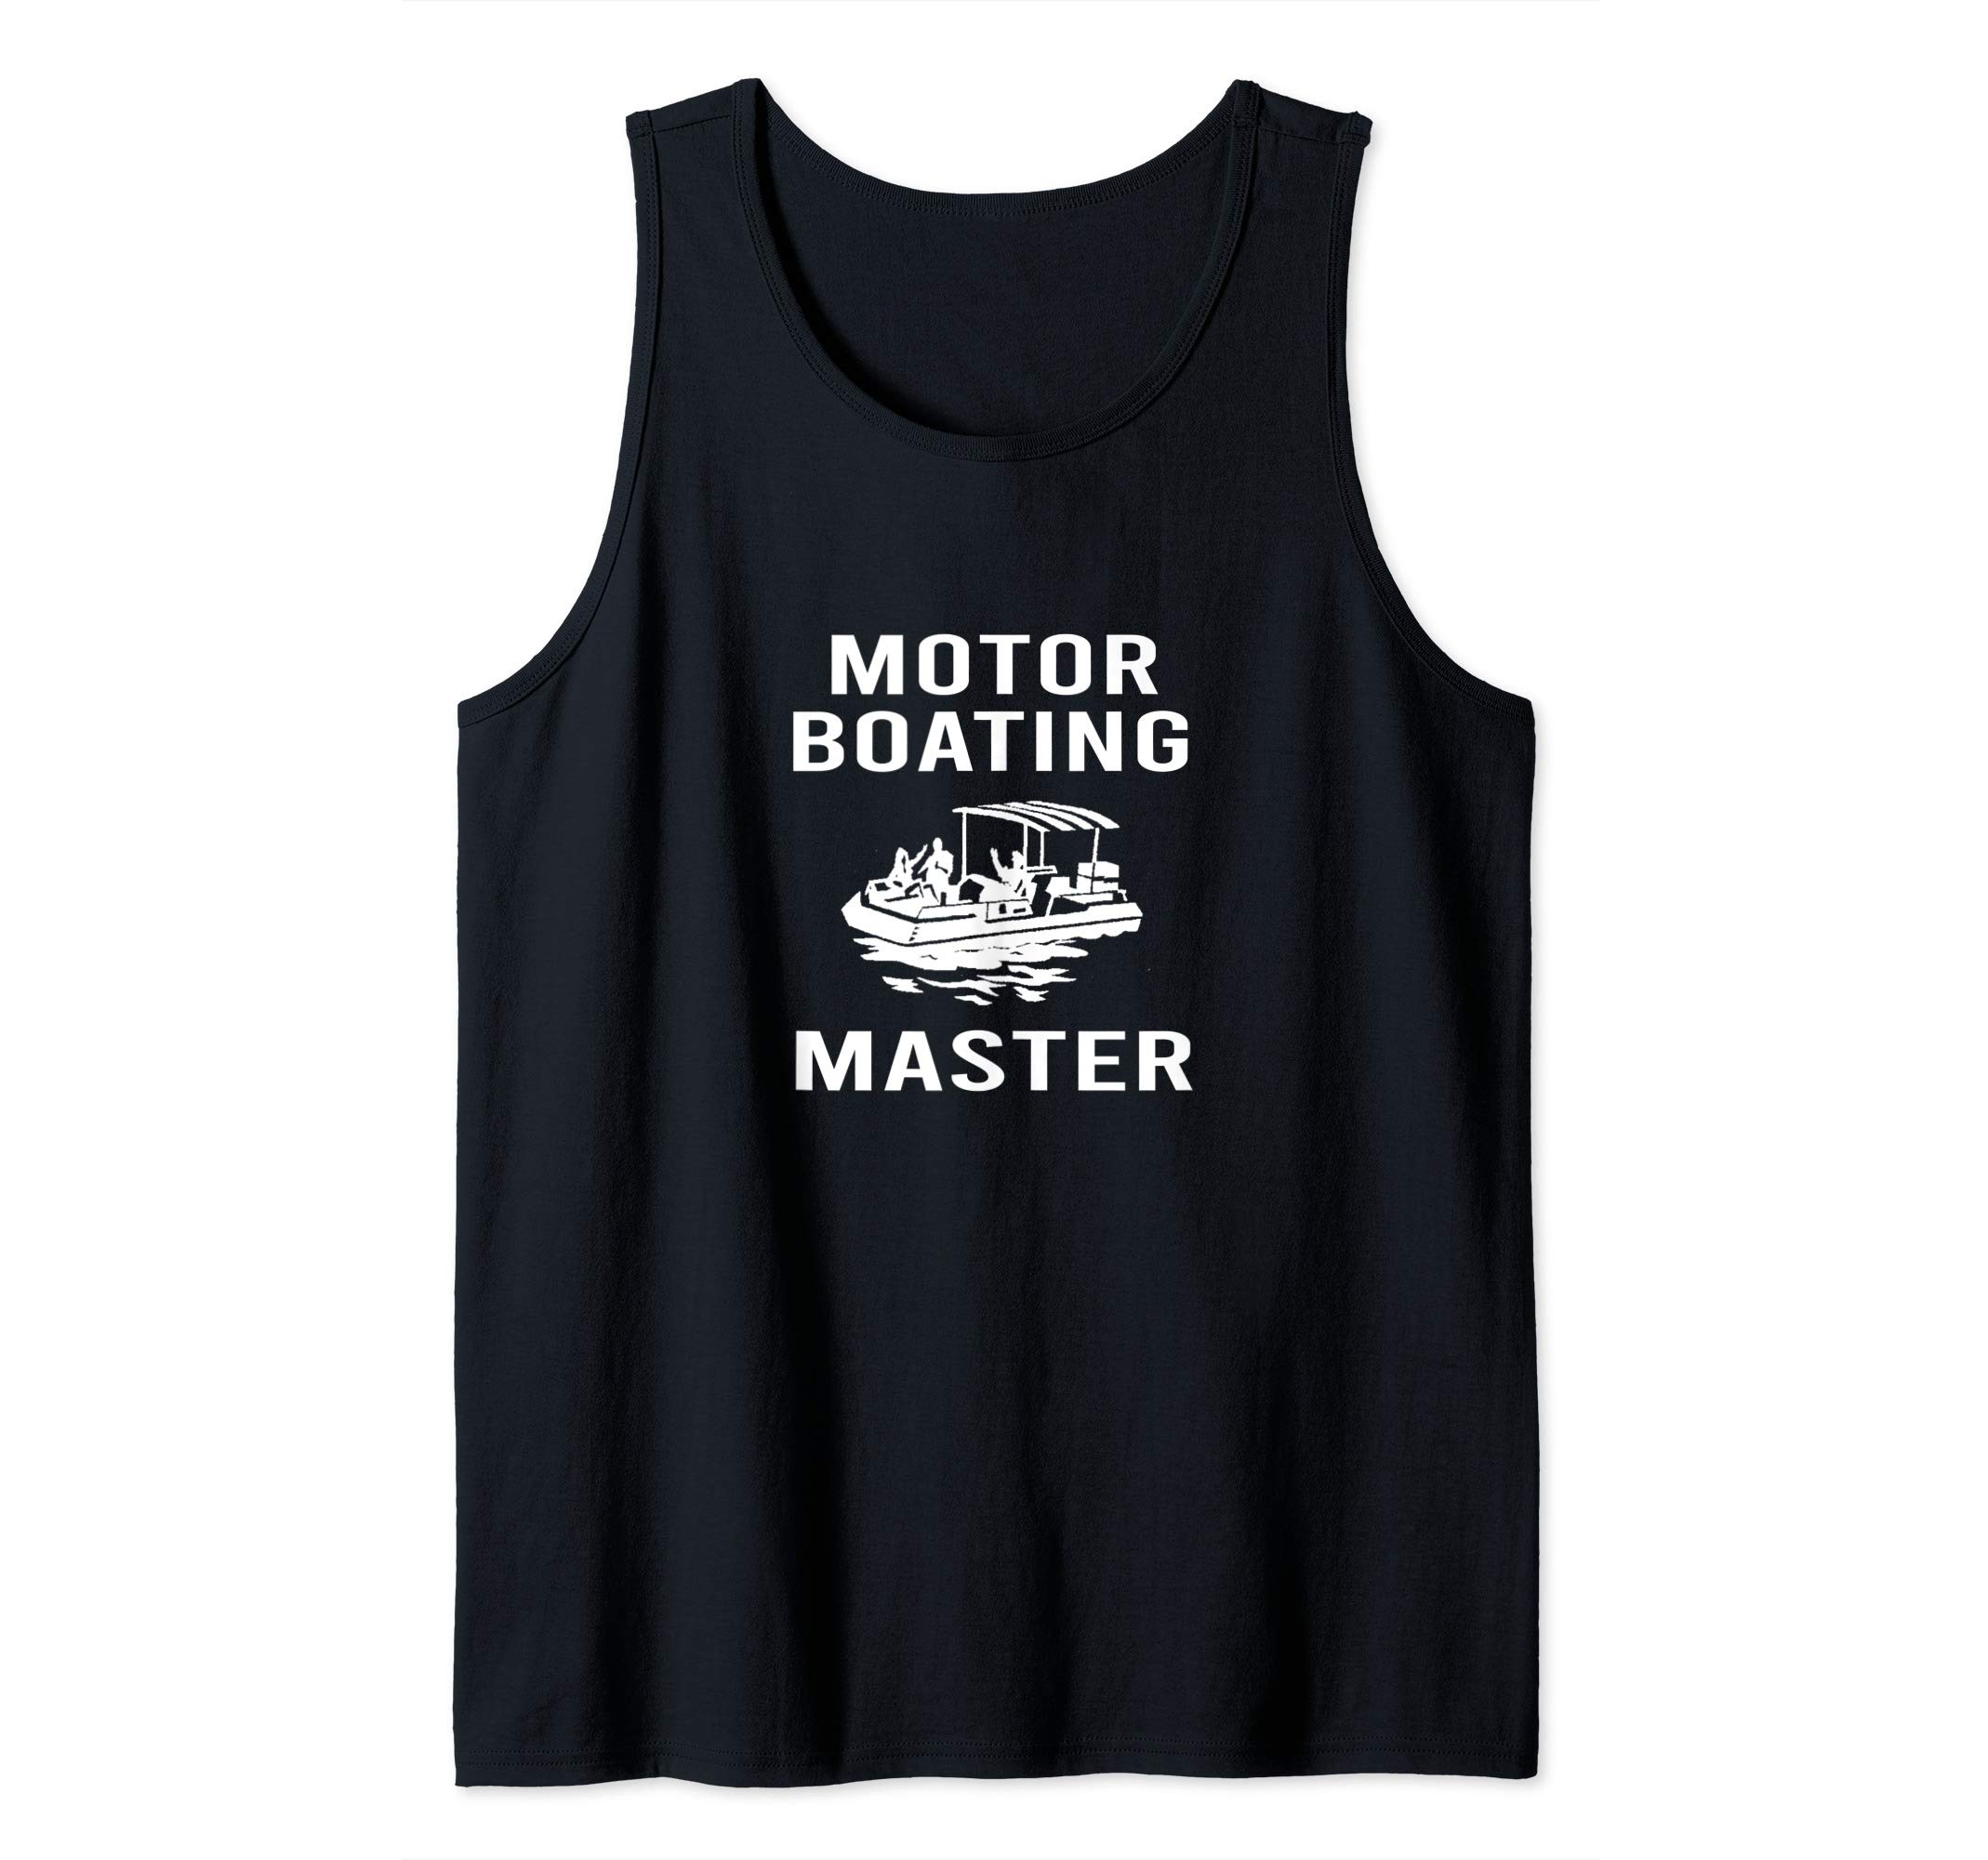 Motor Boating Master Funny Pun Pontoon Captain Motorboat Tank Top by Pontoon Fanatic Apparel to Float the River